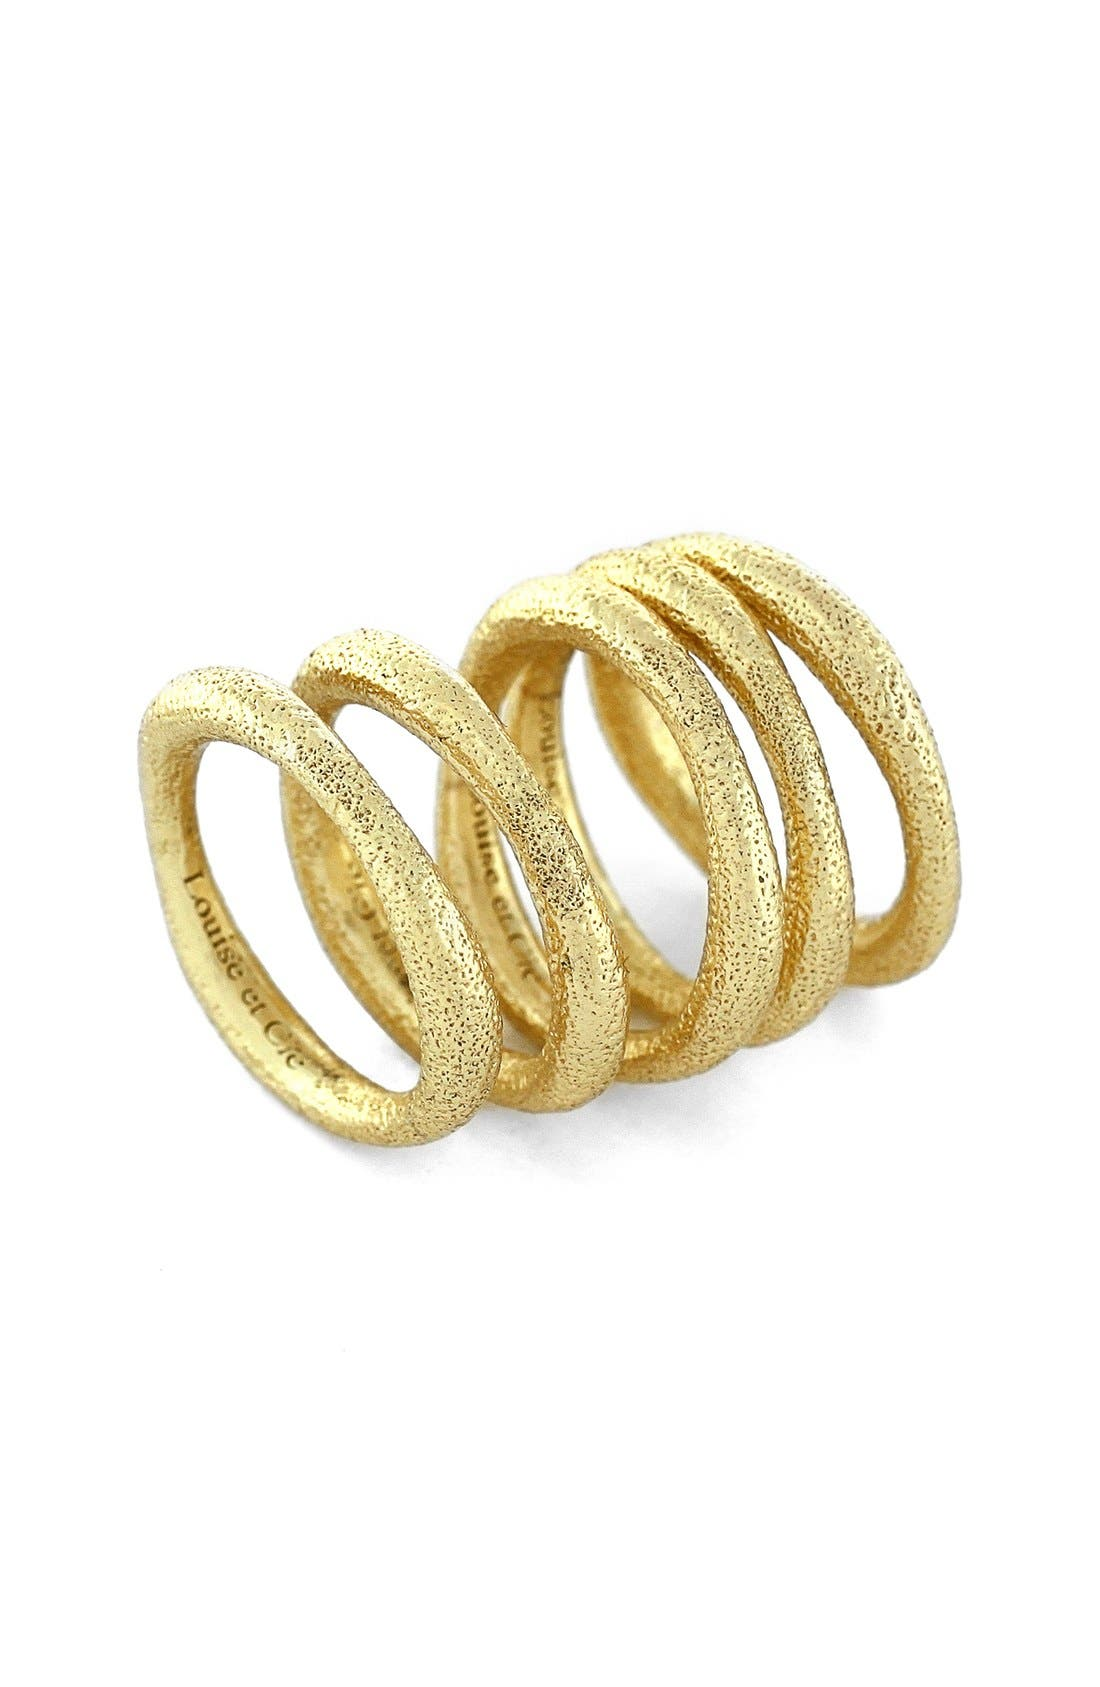 Main Image - Louise et Cie Textured Rings (Set of 5)